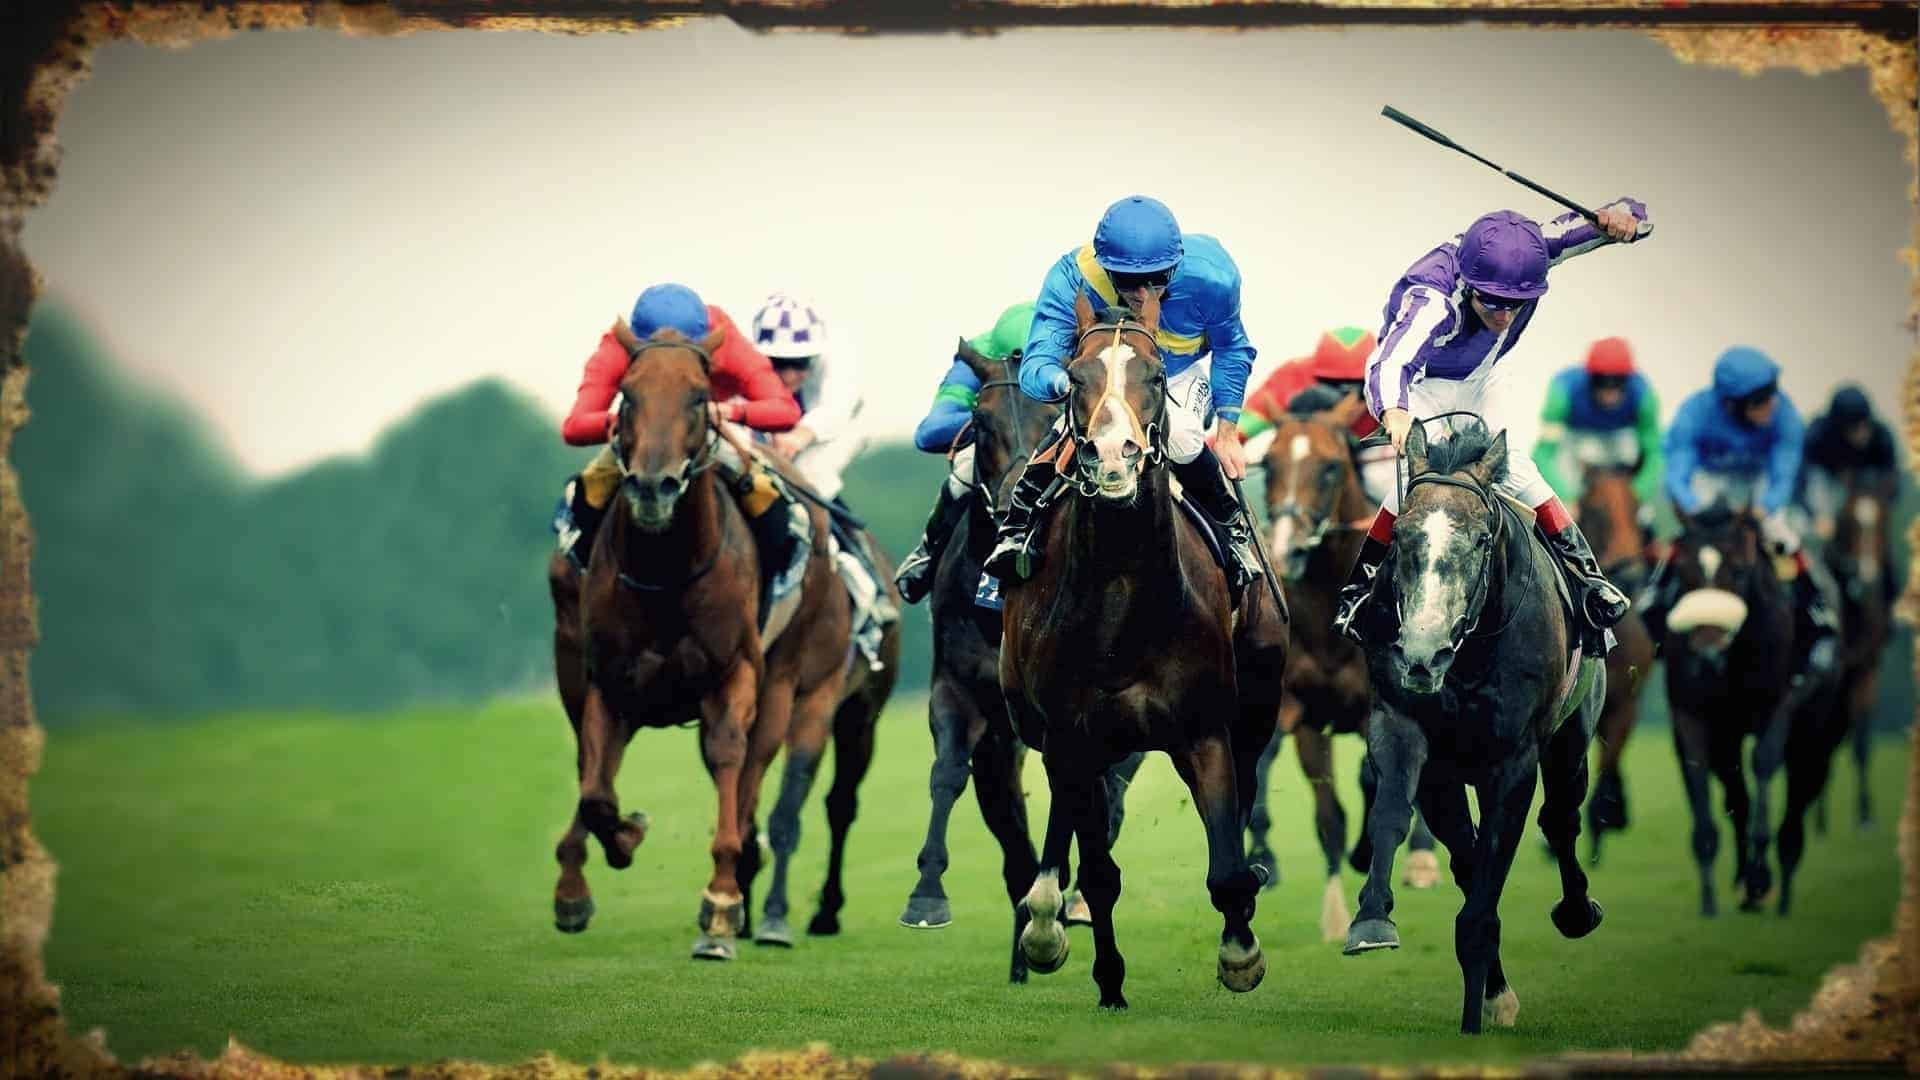 A still from a horse racing track of horses galloping forwards with jockeys crouched on top them. One jockey has raised his whip above his head in order to strike the horse beneath him with maximum force.